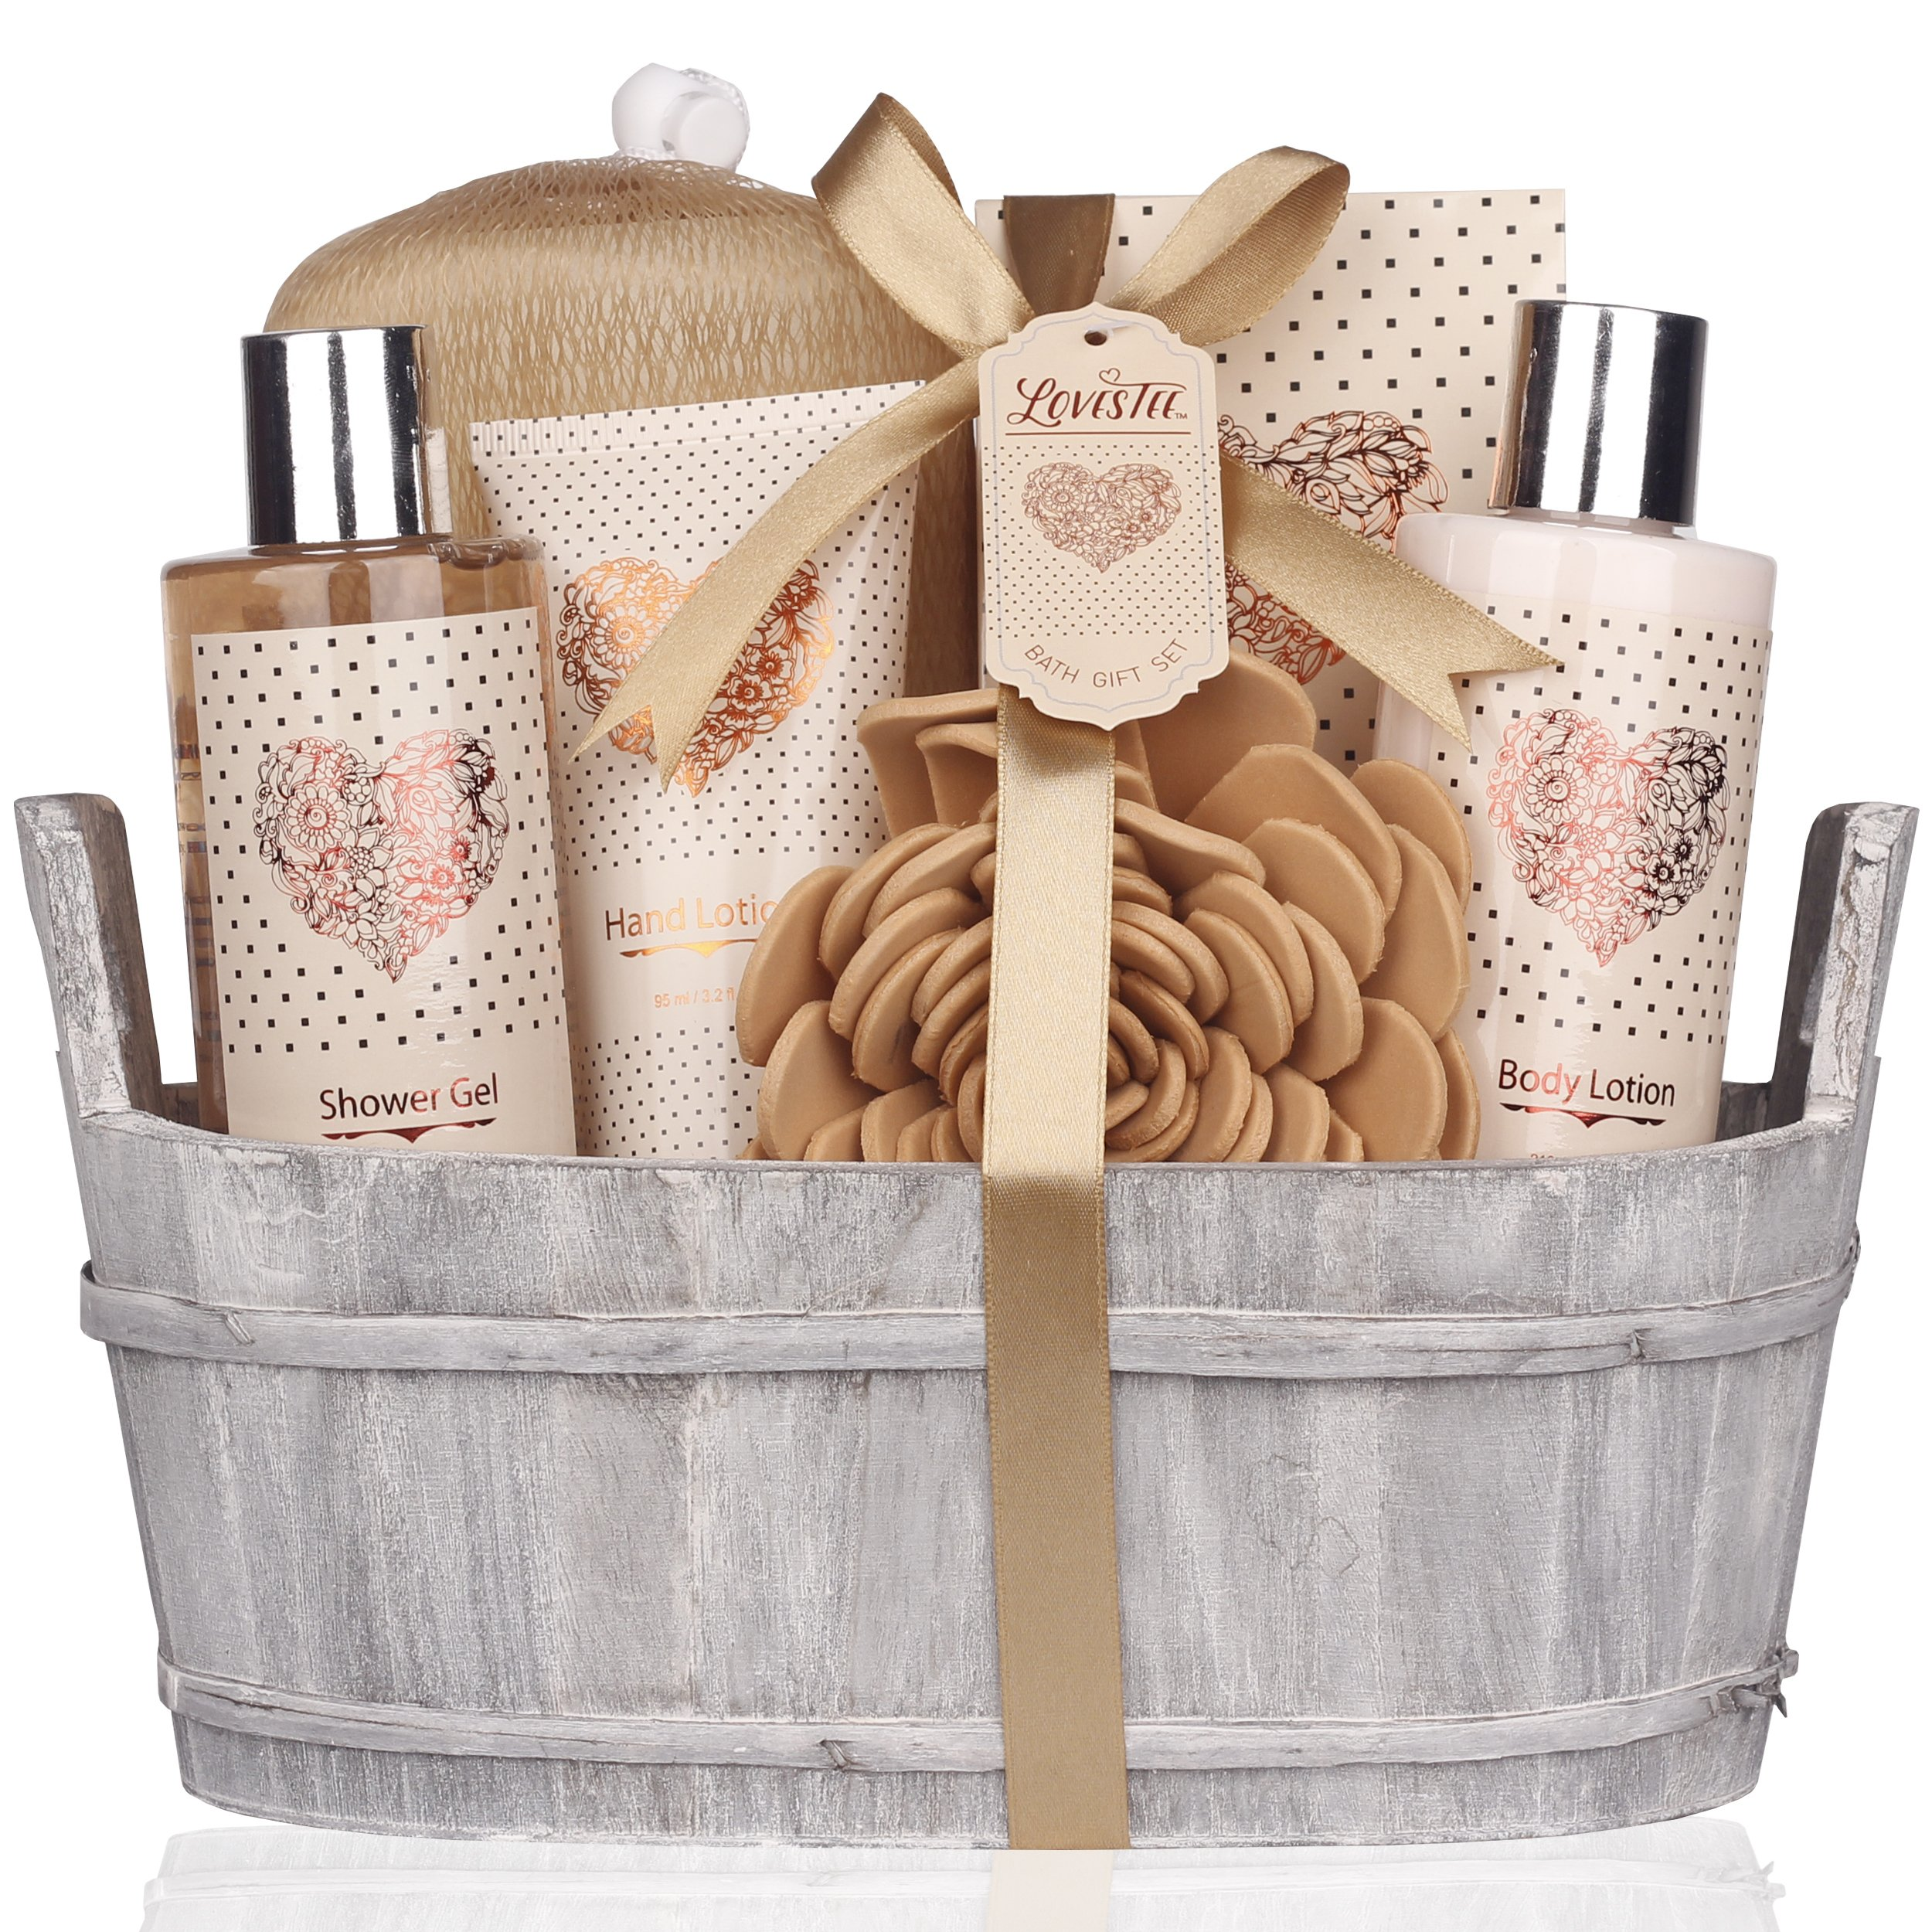 Spa Gift Basket - Bath and Body Set with Vanilla Fragrance by Lovestee - Bath Gift Basket Includes Shower Gel, Body Lotion, Hand Lotion, Bath Salt, Eva Sponge and a Bath Puff by Lovestee